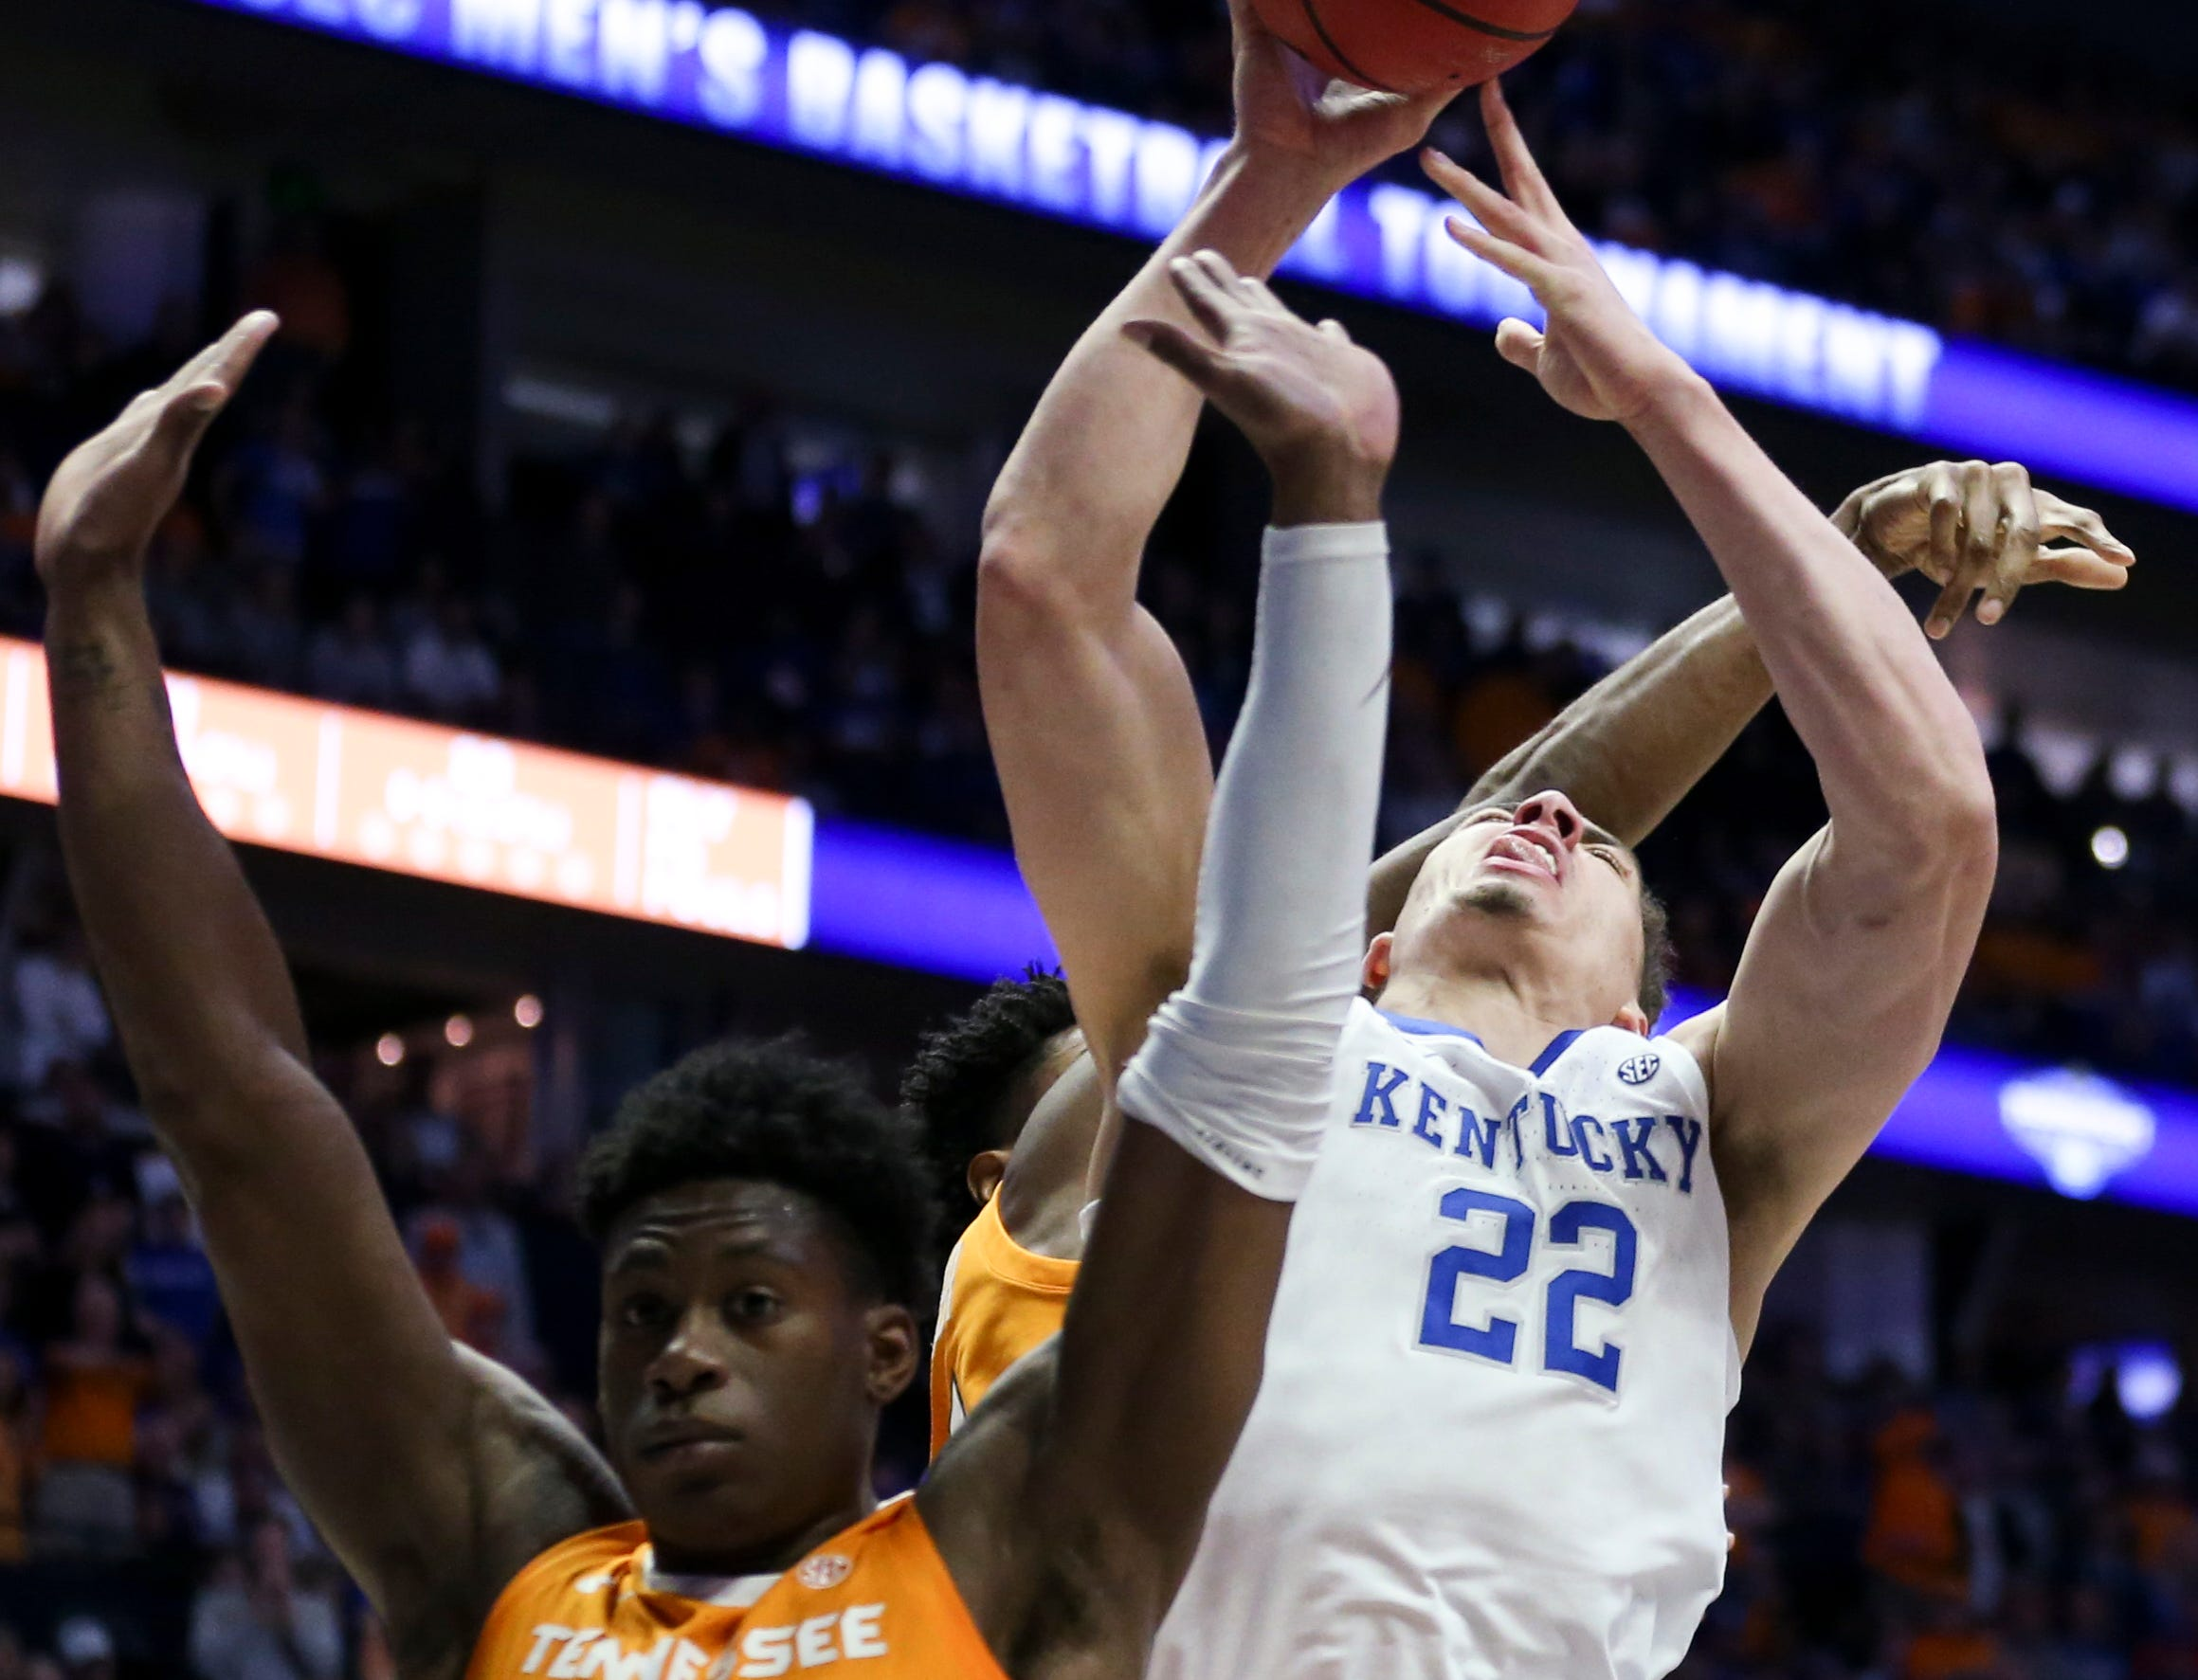 Kentucky forward Reid Travis (22) shoots against Tennessee guard Admiral Schofield (5) during the first half of the SEC Men's Basketball Tournament semifinal game at Bridgestone Arena in Nashville, Tenn., Saturday, March 16, 2019.